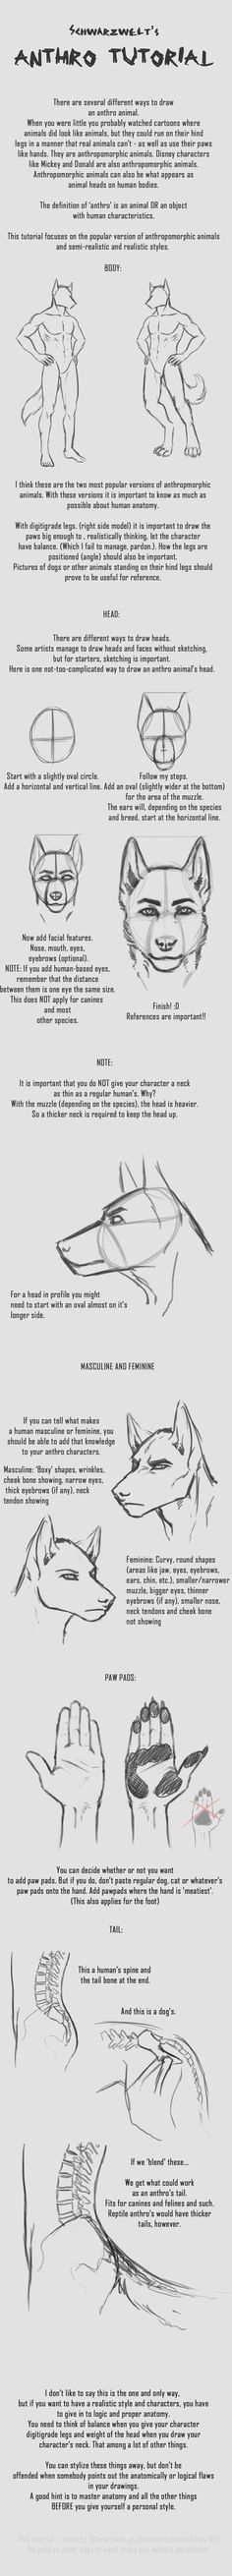 ANTHRO TUTORIAL by Delta141.deviantart.com on @deviantART: